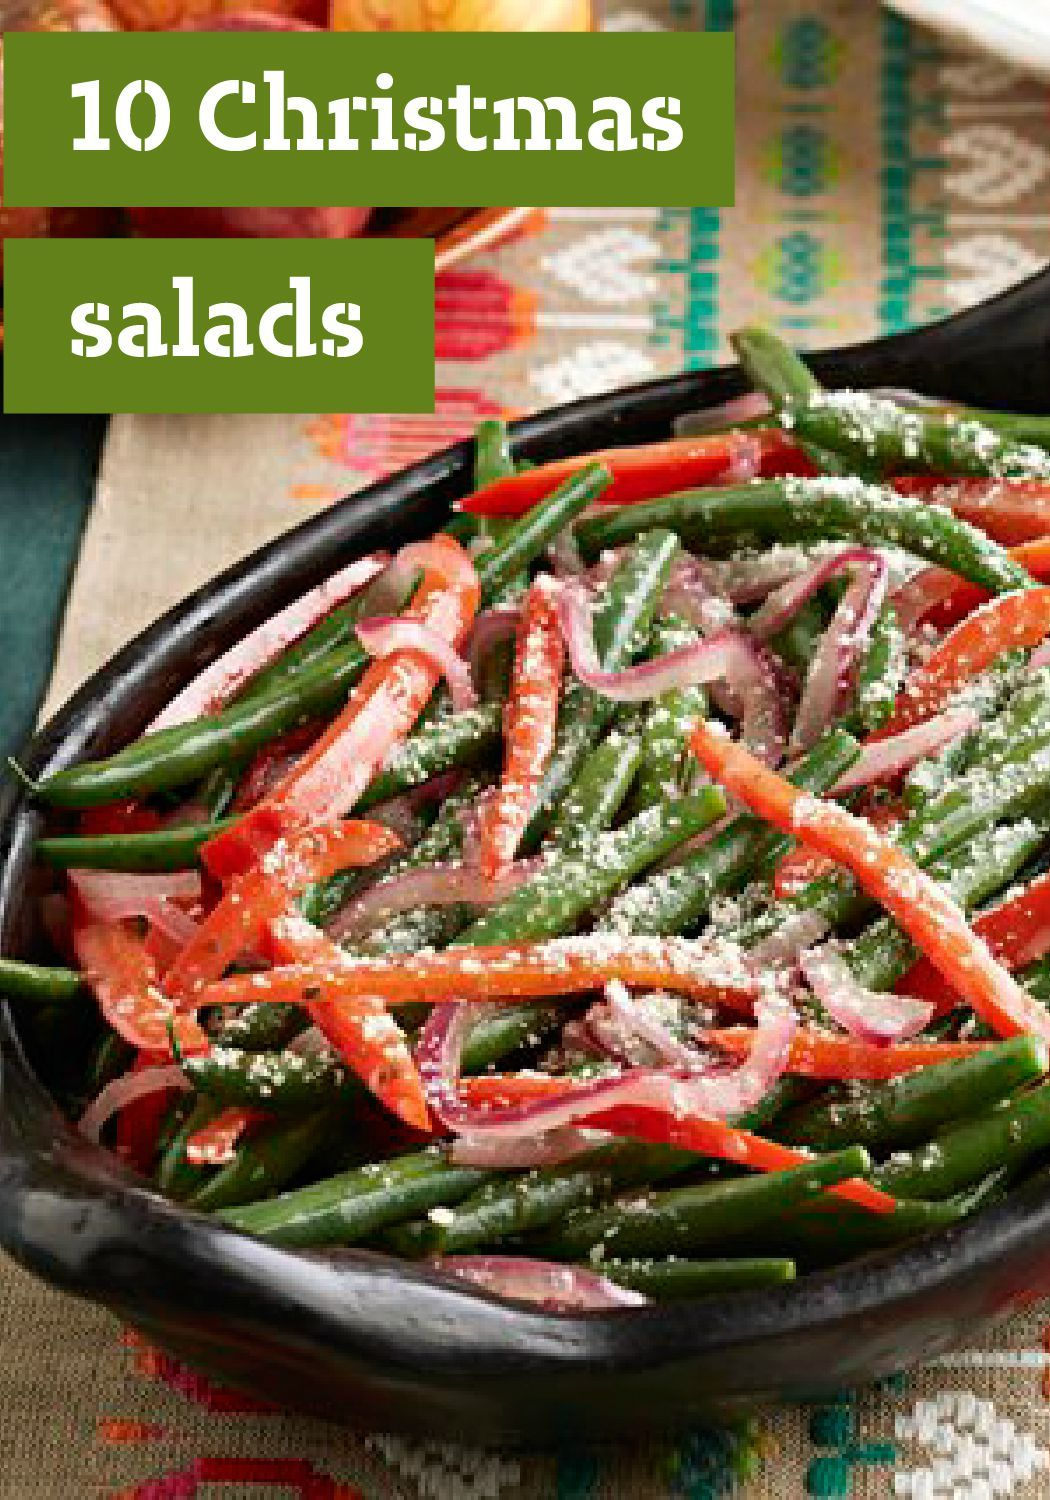 10 christmas salads these christmas salad recipes are a celebration of in season winter greens colorful citrus wedges and classic jell o salads